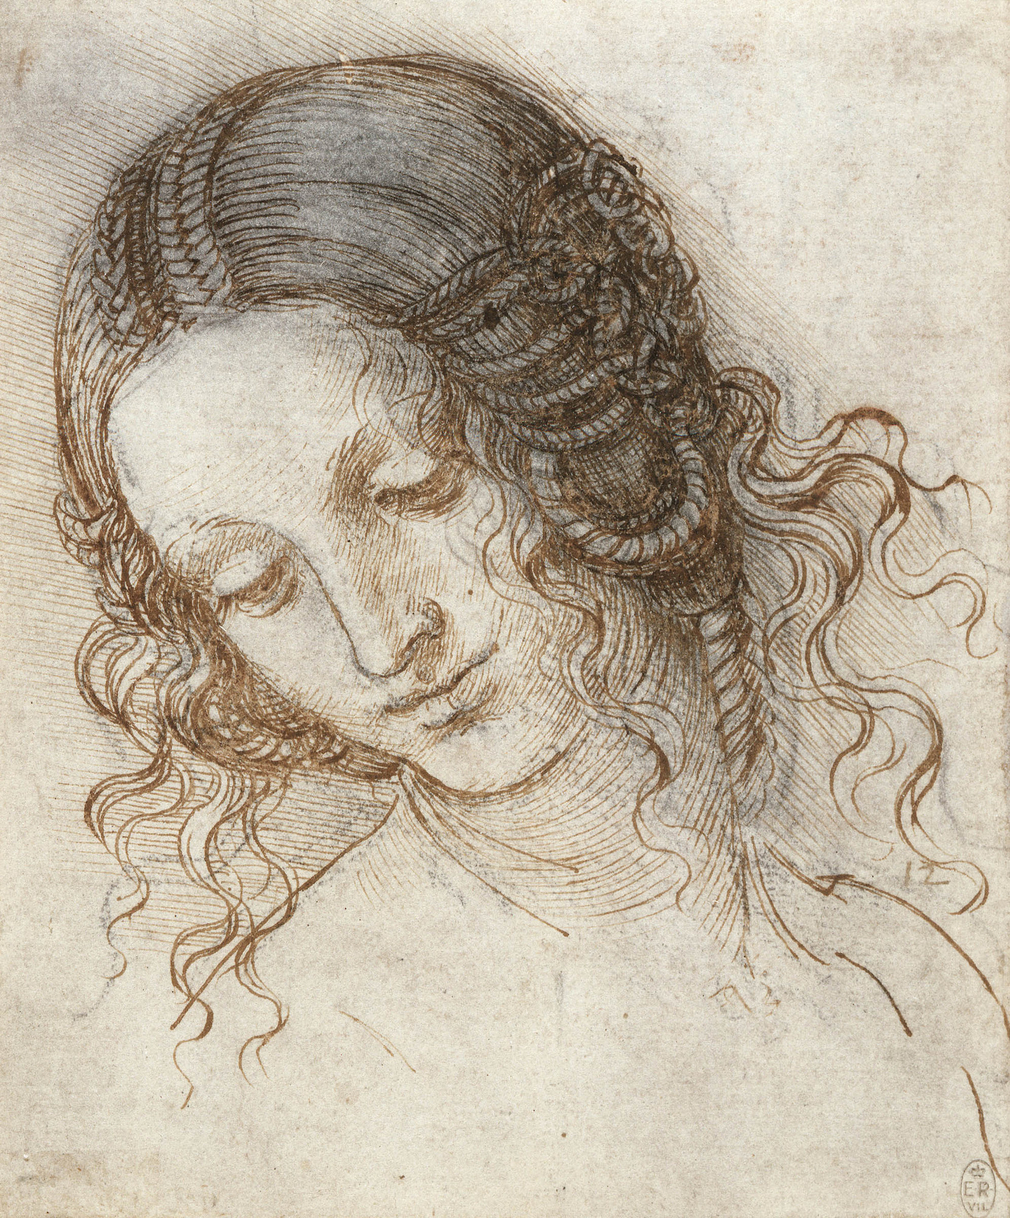 A drawing of the head of a woman turned three quarters to the left, looking down. The hair is fastened in elaborate braids, and arranged in coils over the ears. This is a study for the head of Leda in the lost painting of <em>Leda and the Swan</em>.<br> <